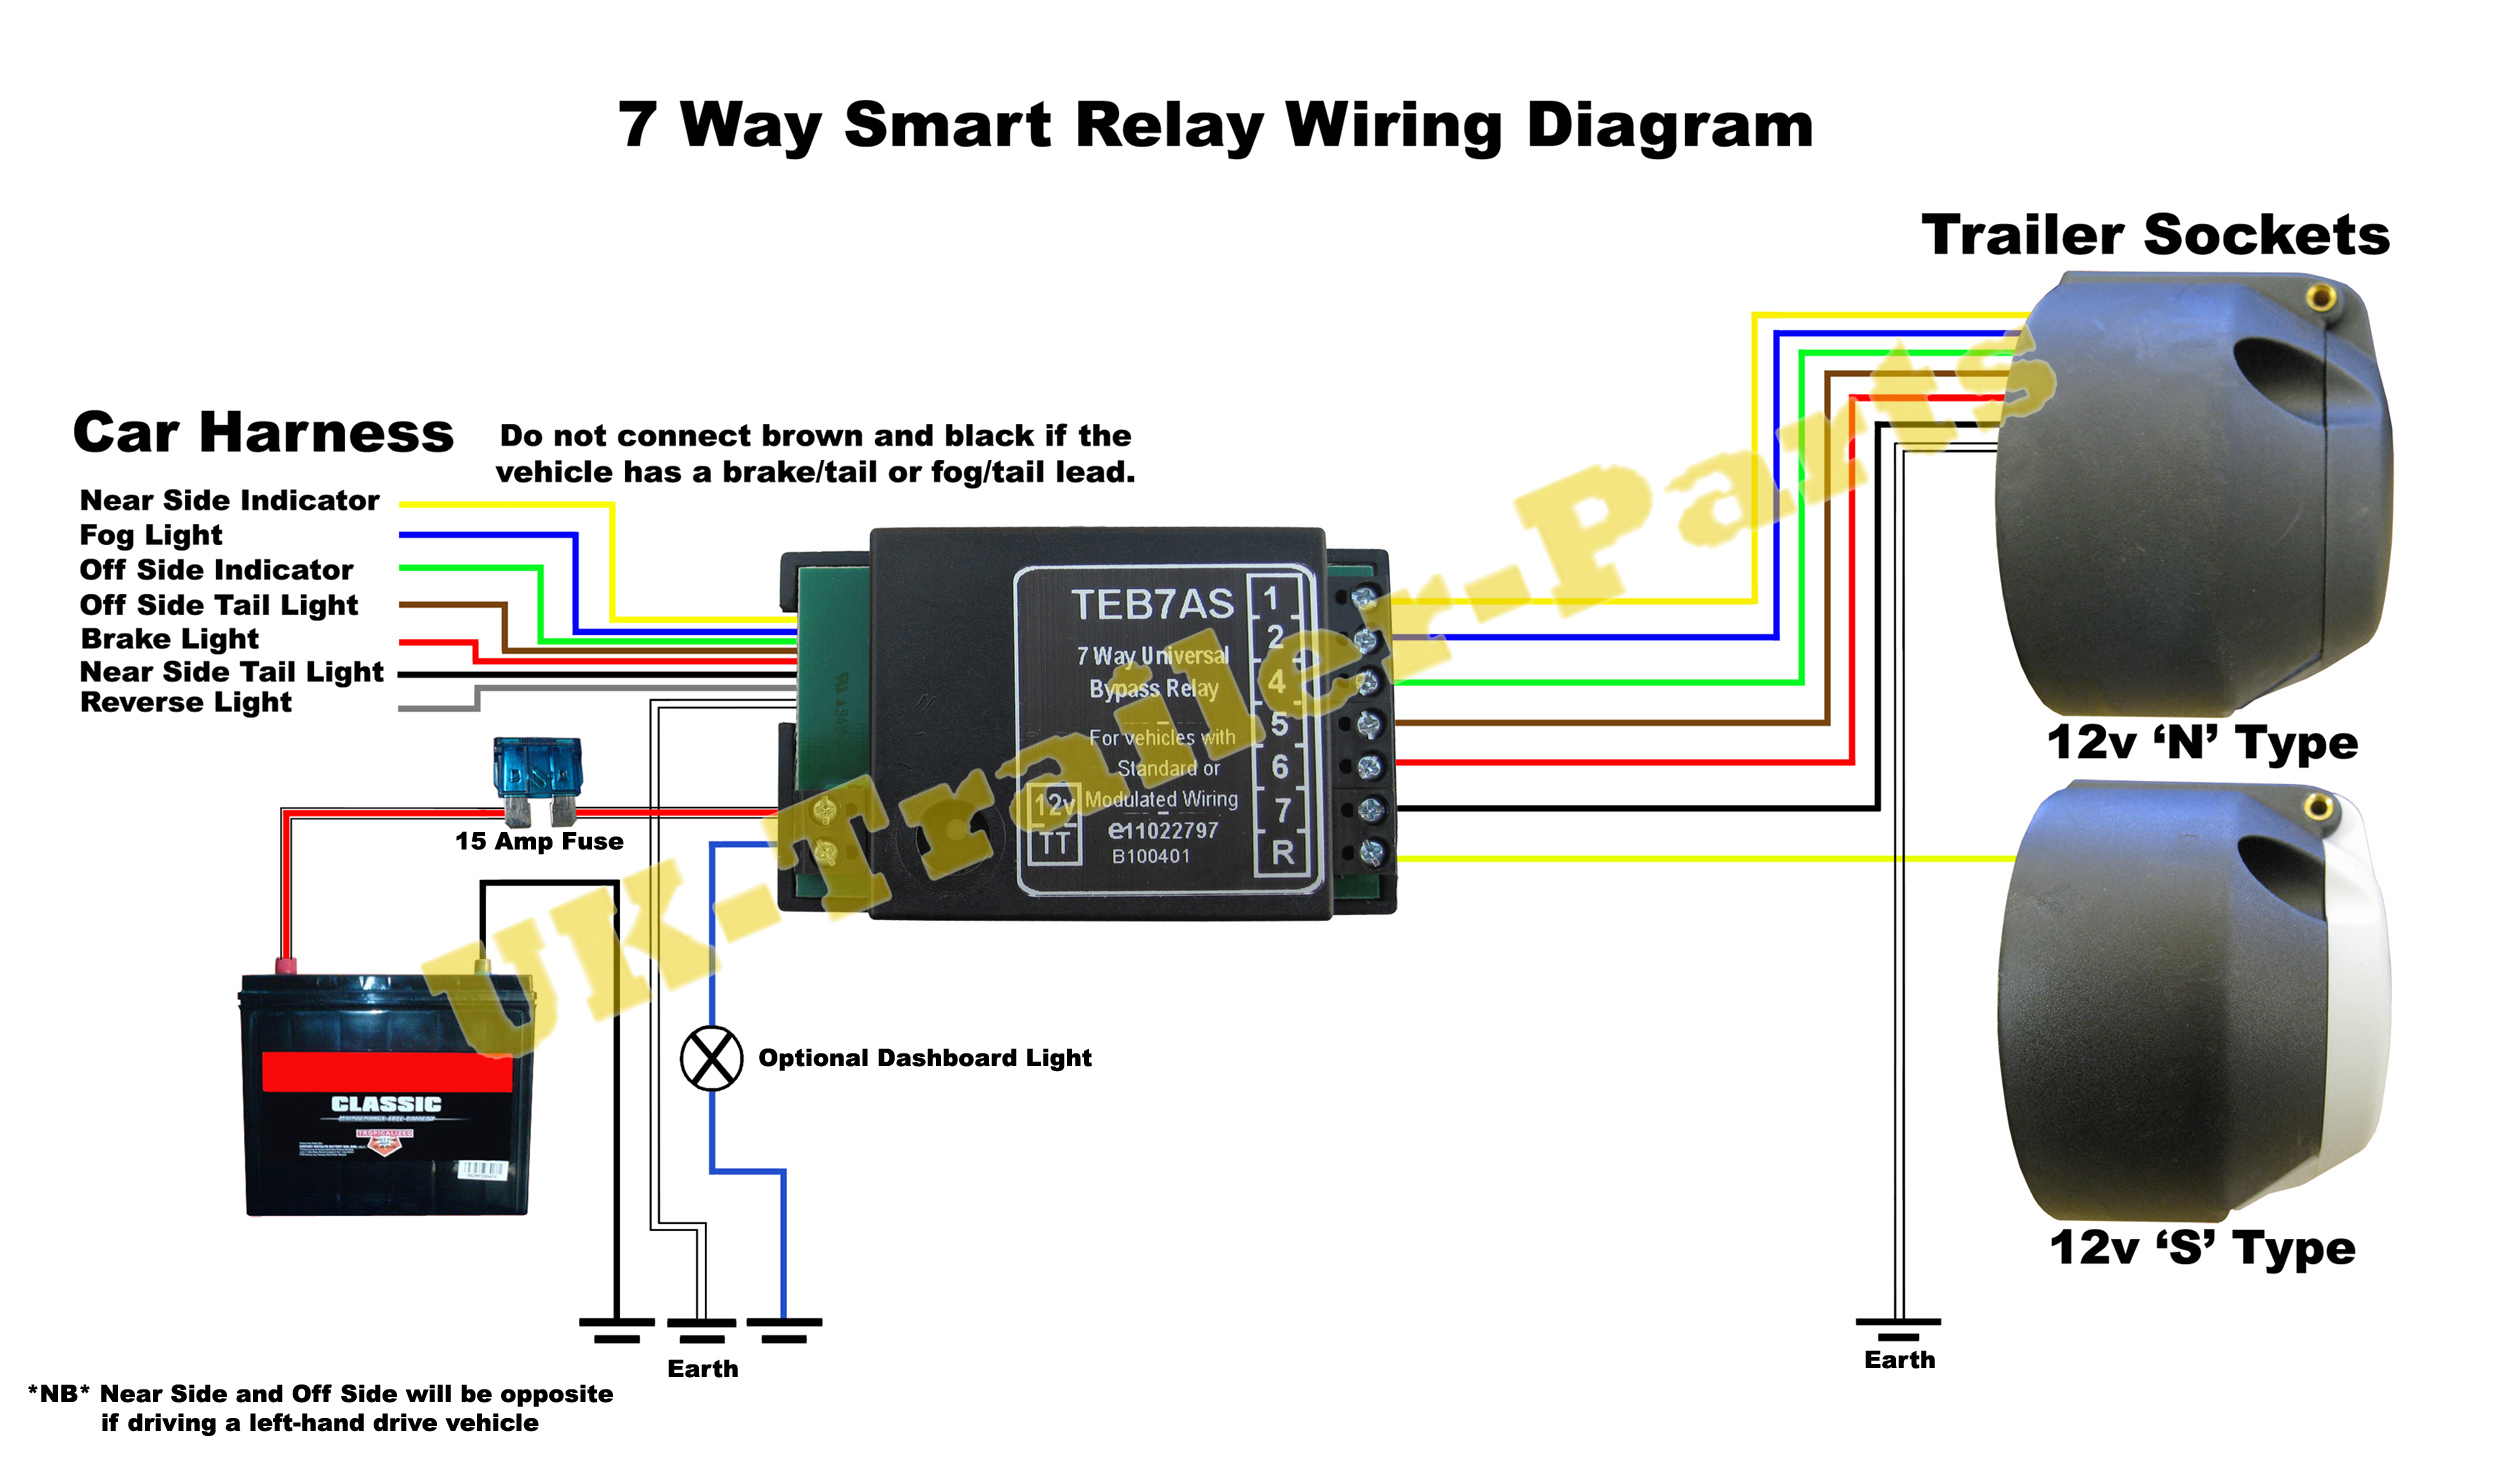 smart relay wiring diagram2 7 way universal bypass relay wiring diagram uk trailer parts vauxhall vectra towbar wiring diagram at bakdesigns.co